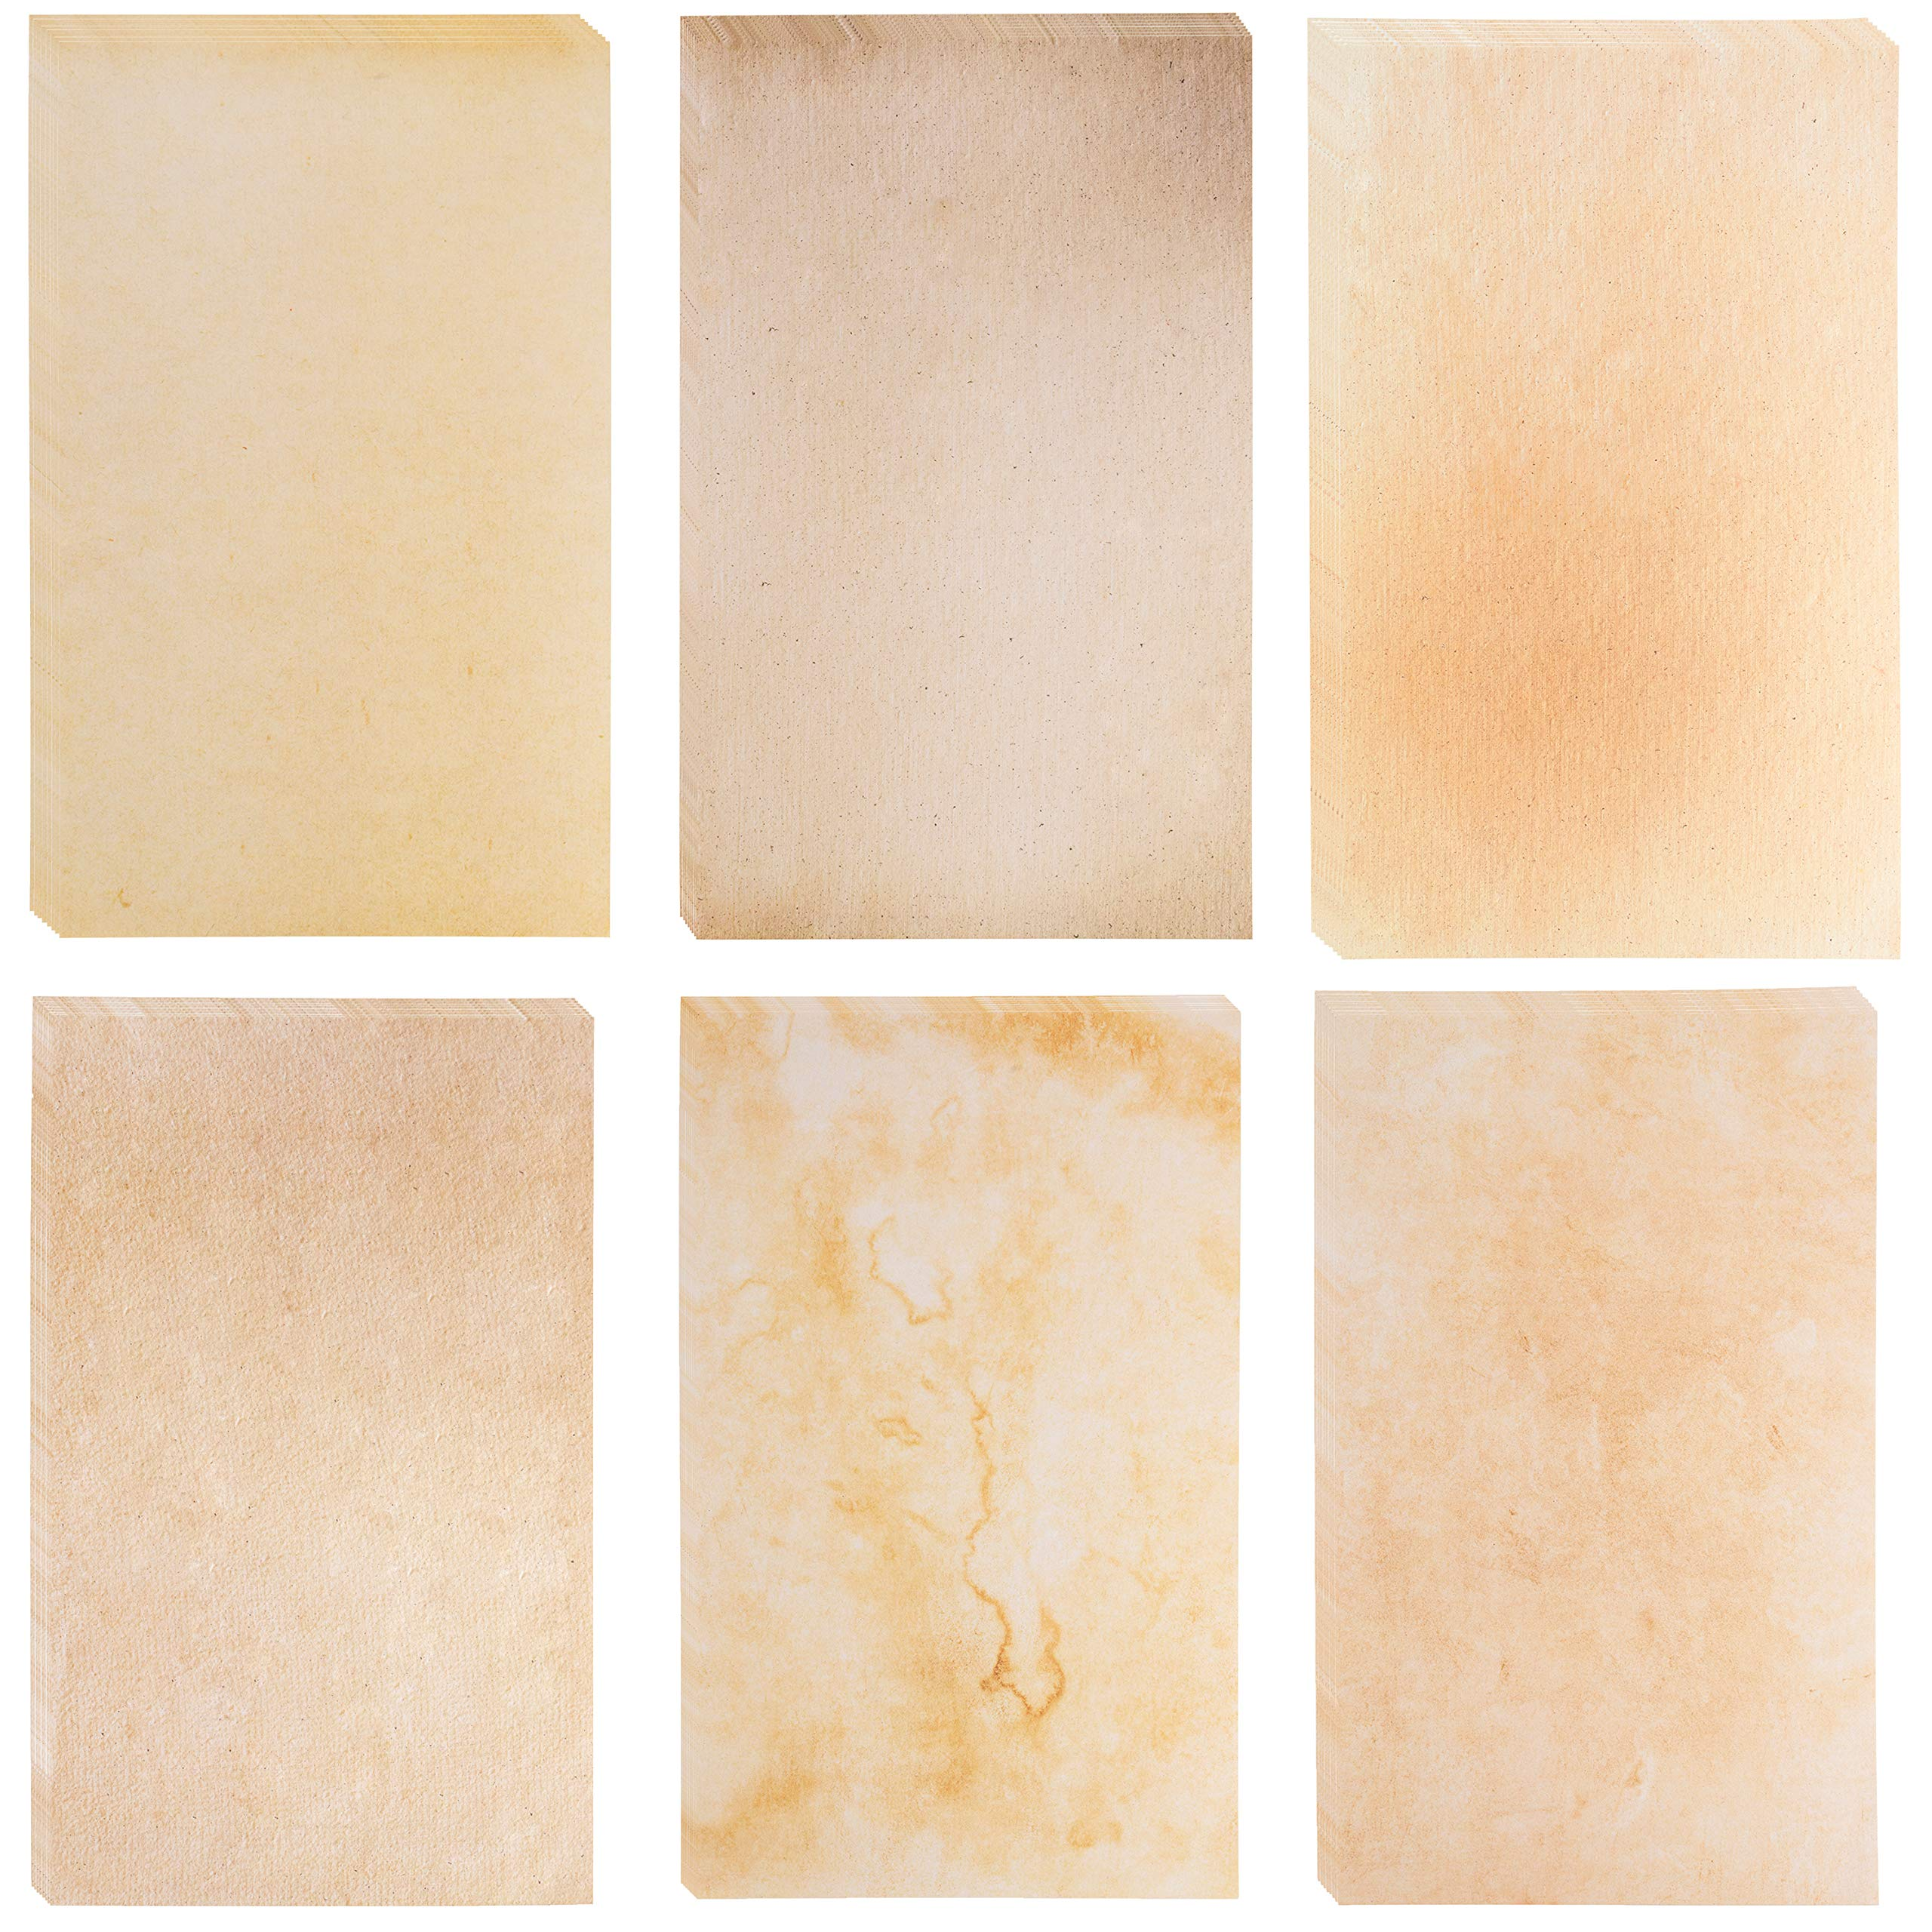 48-Sheet Stationery Paper - Old Fashion Aged Menu Paper for Restaurants, 6 Classic Vintage Antique Designs, Double Sided, Perfect for Printing, Copying, Crafting, Invitations, 8.5 x 14 Inches